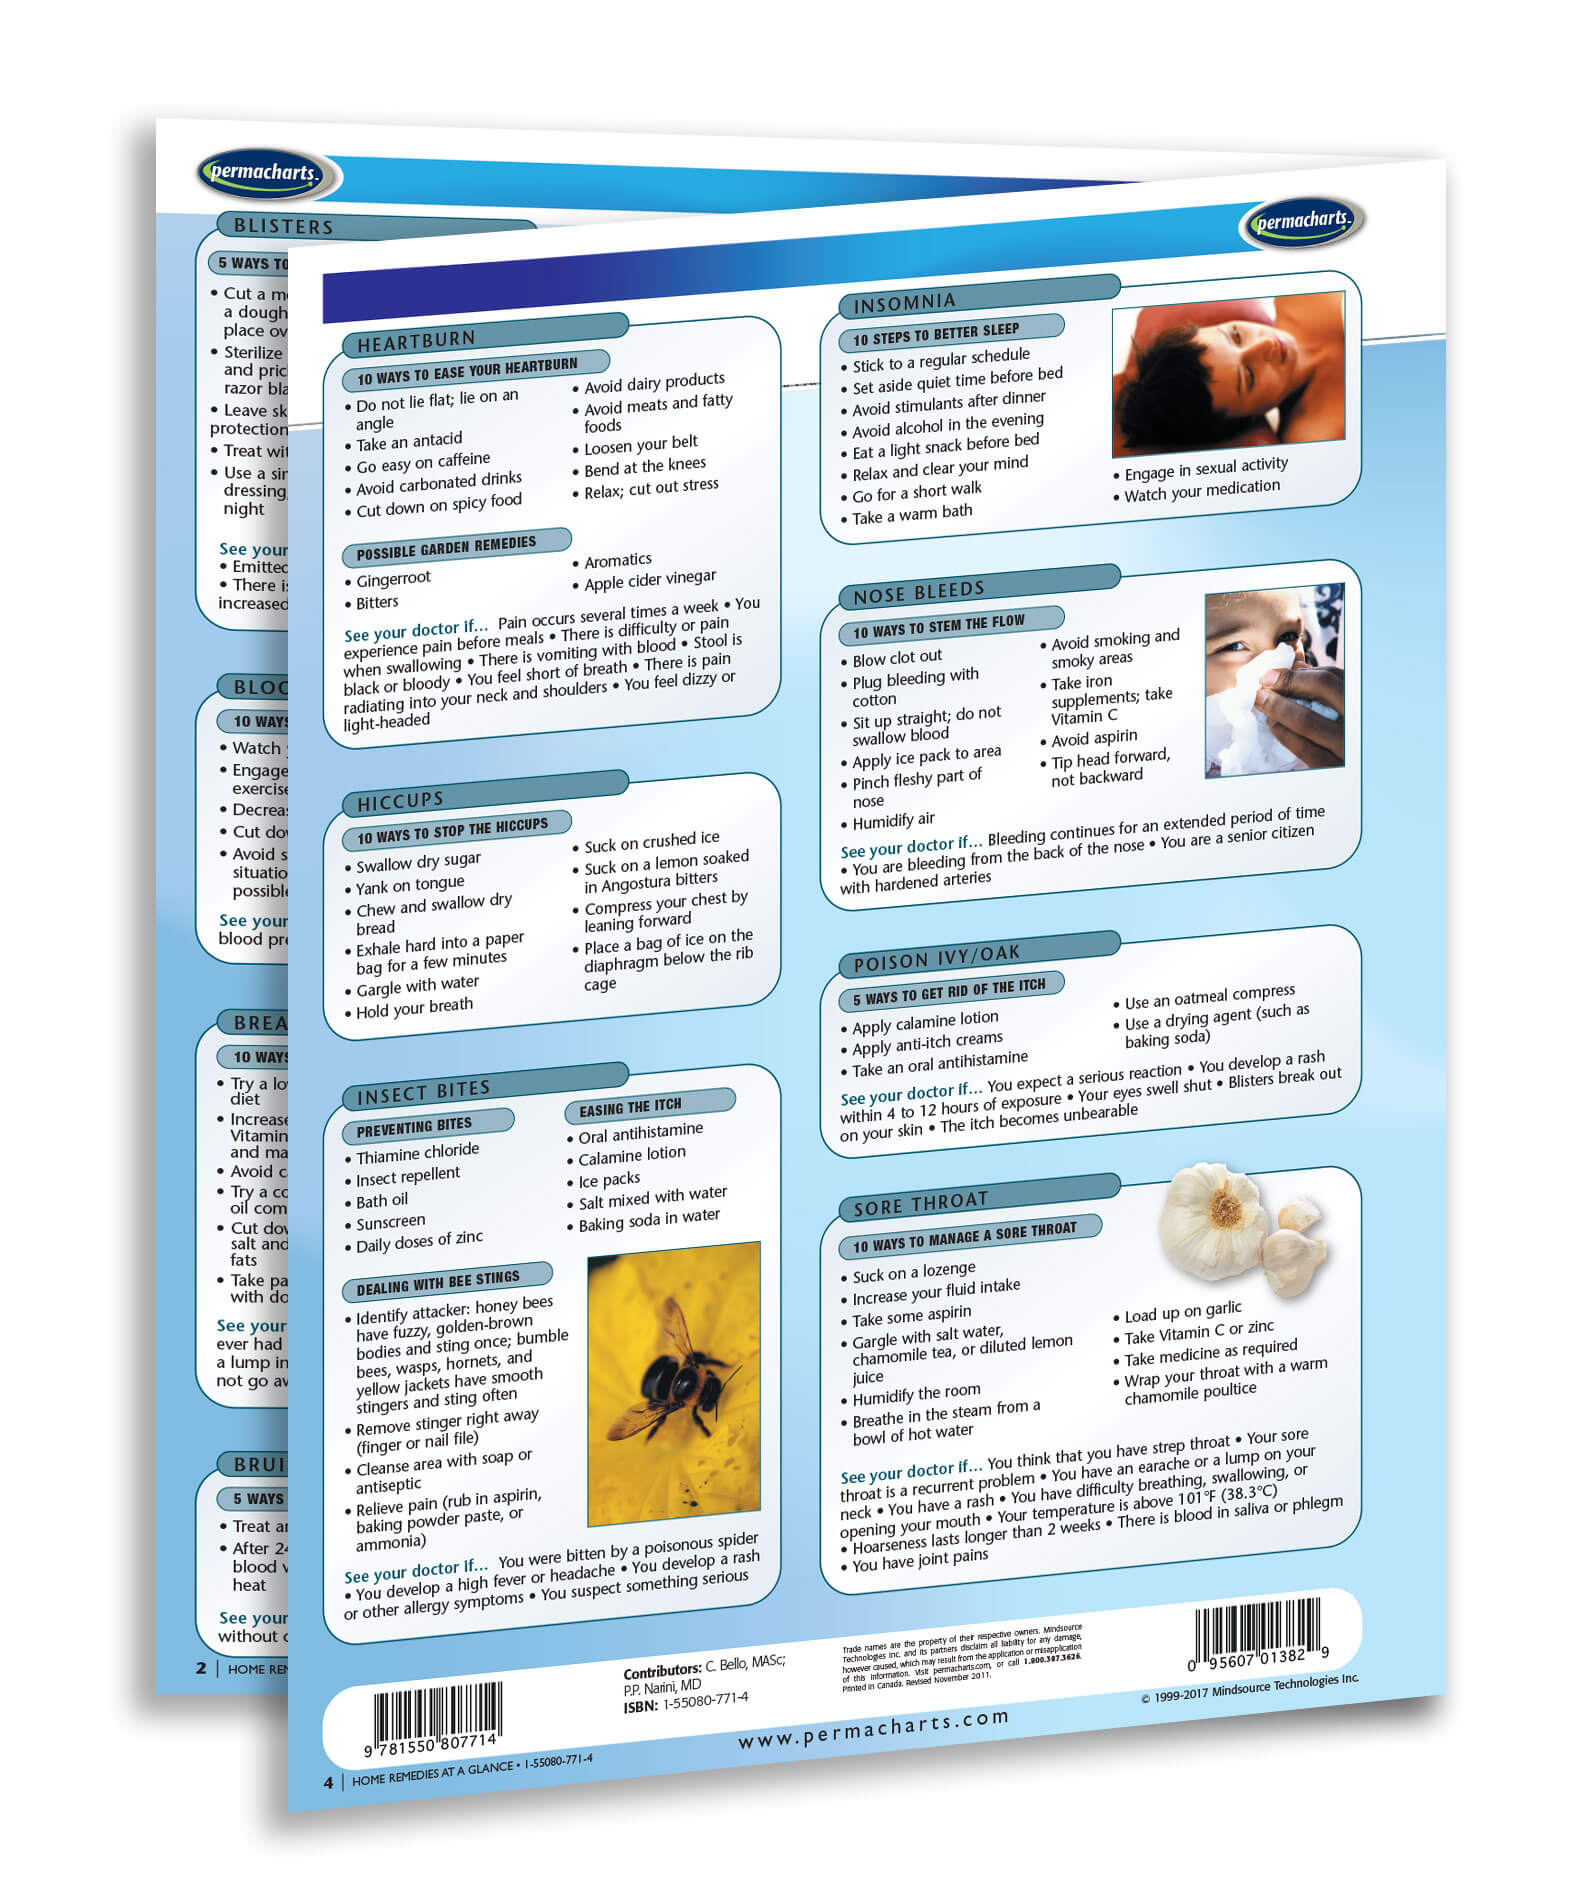 Home Remedies Guide - Quick Reference Guide - 4 page Laminated Chart